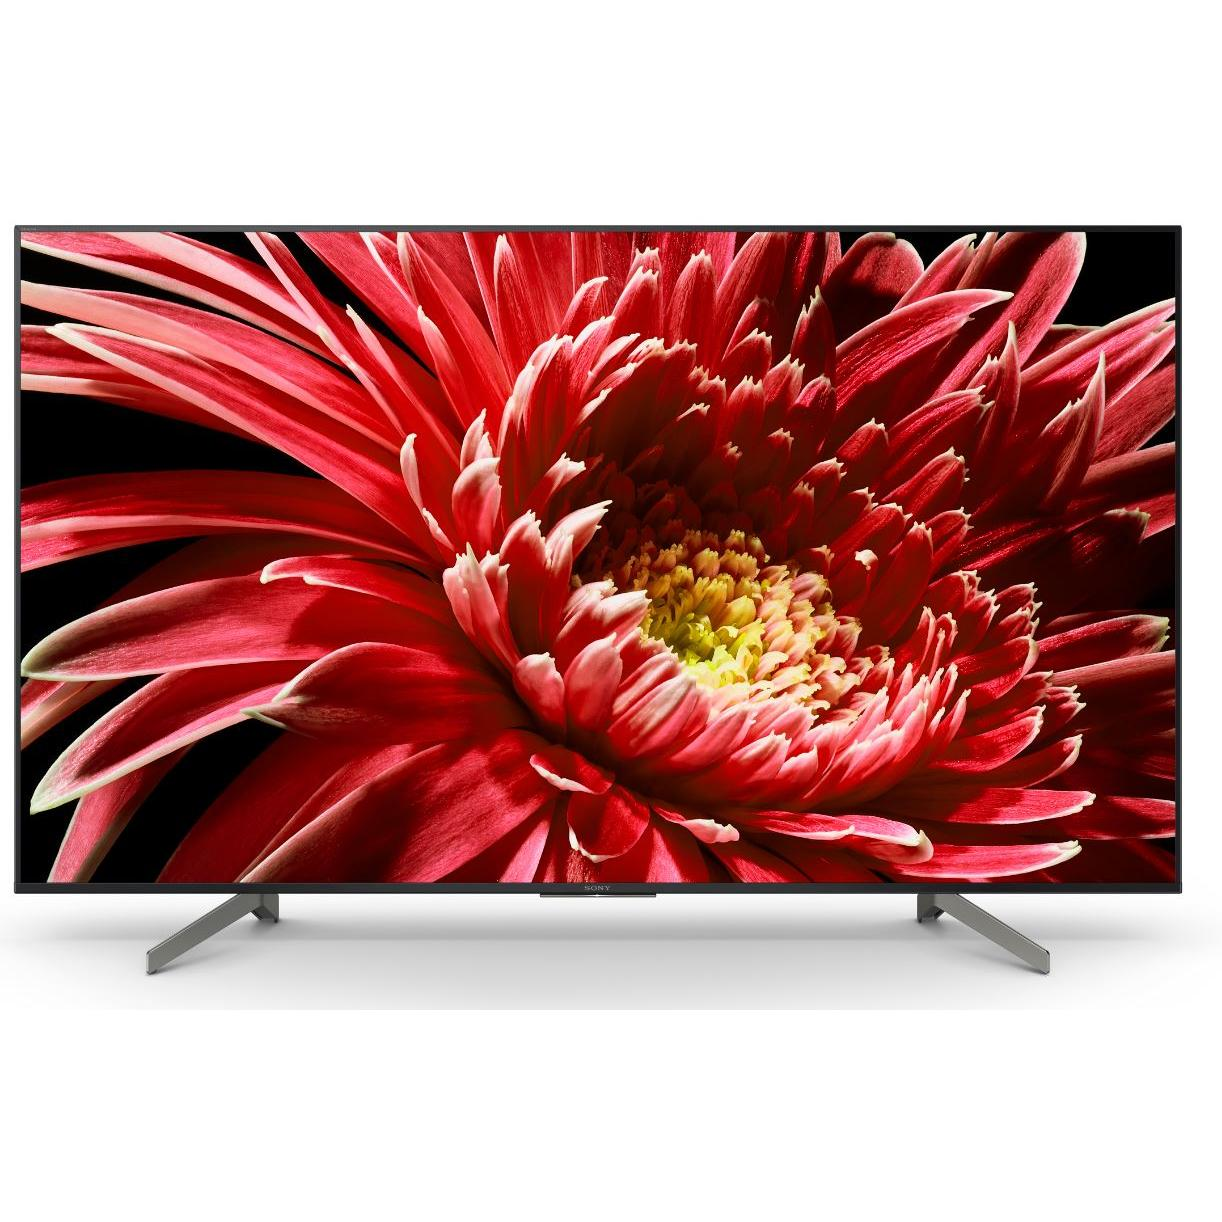 "Sony KD-55XG8505 55"" LED 4K Ultra HD HDR Smart Television"